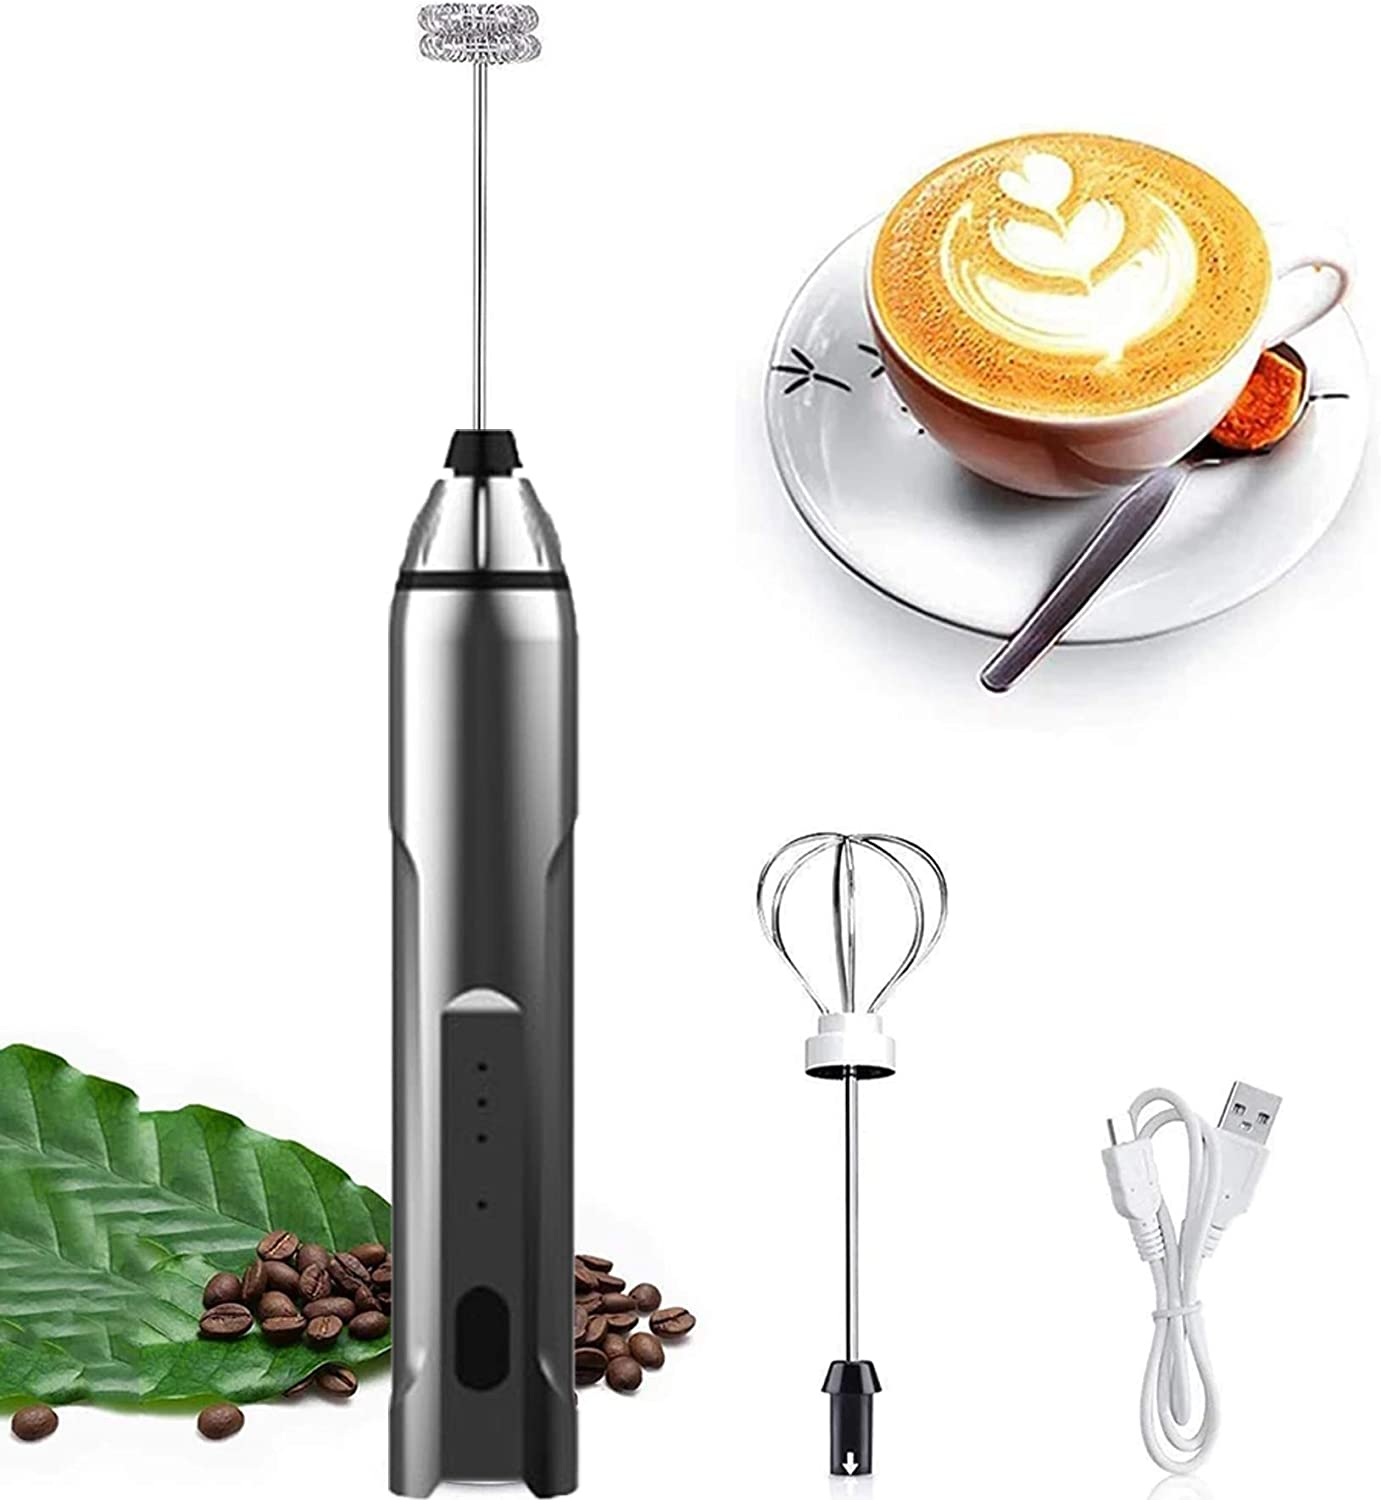 SNOMYRS USB Rechargeable Milk Frother 3 Speeds Mini Handheld Electric Blender Mixer with 2 Stainless Steel Whisks Portable Egg Beater Mixer Suitable For Coffee Cappuccino Hot Chocolate Latte Matcha (Silvery)